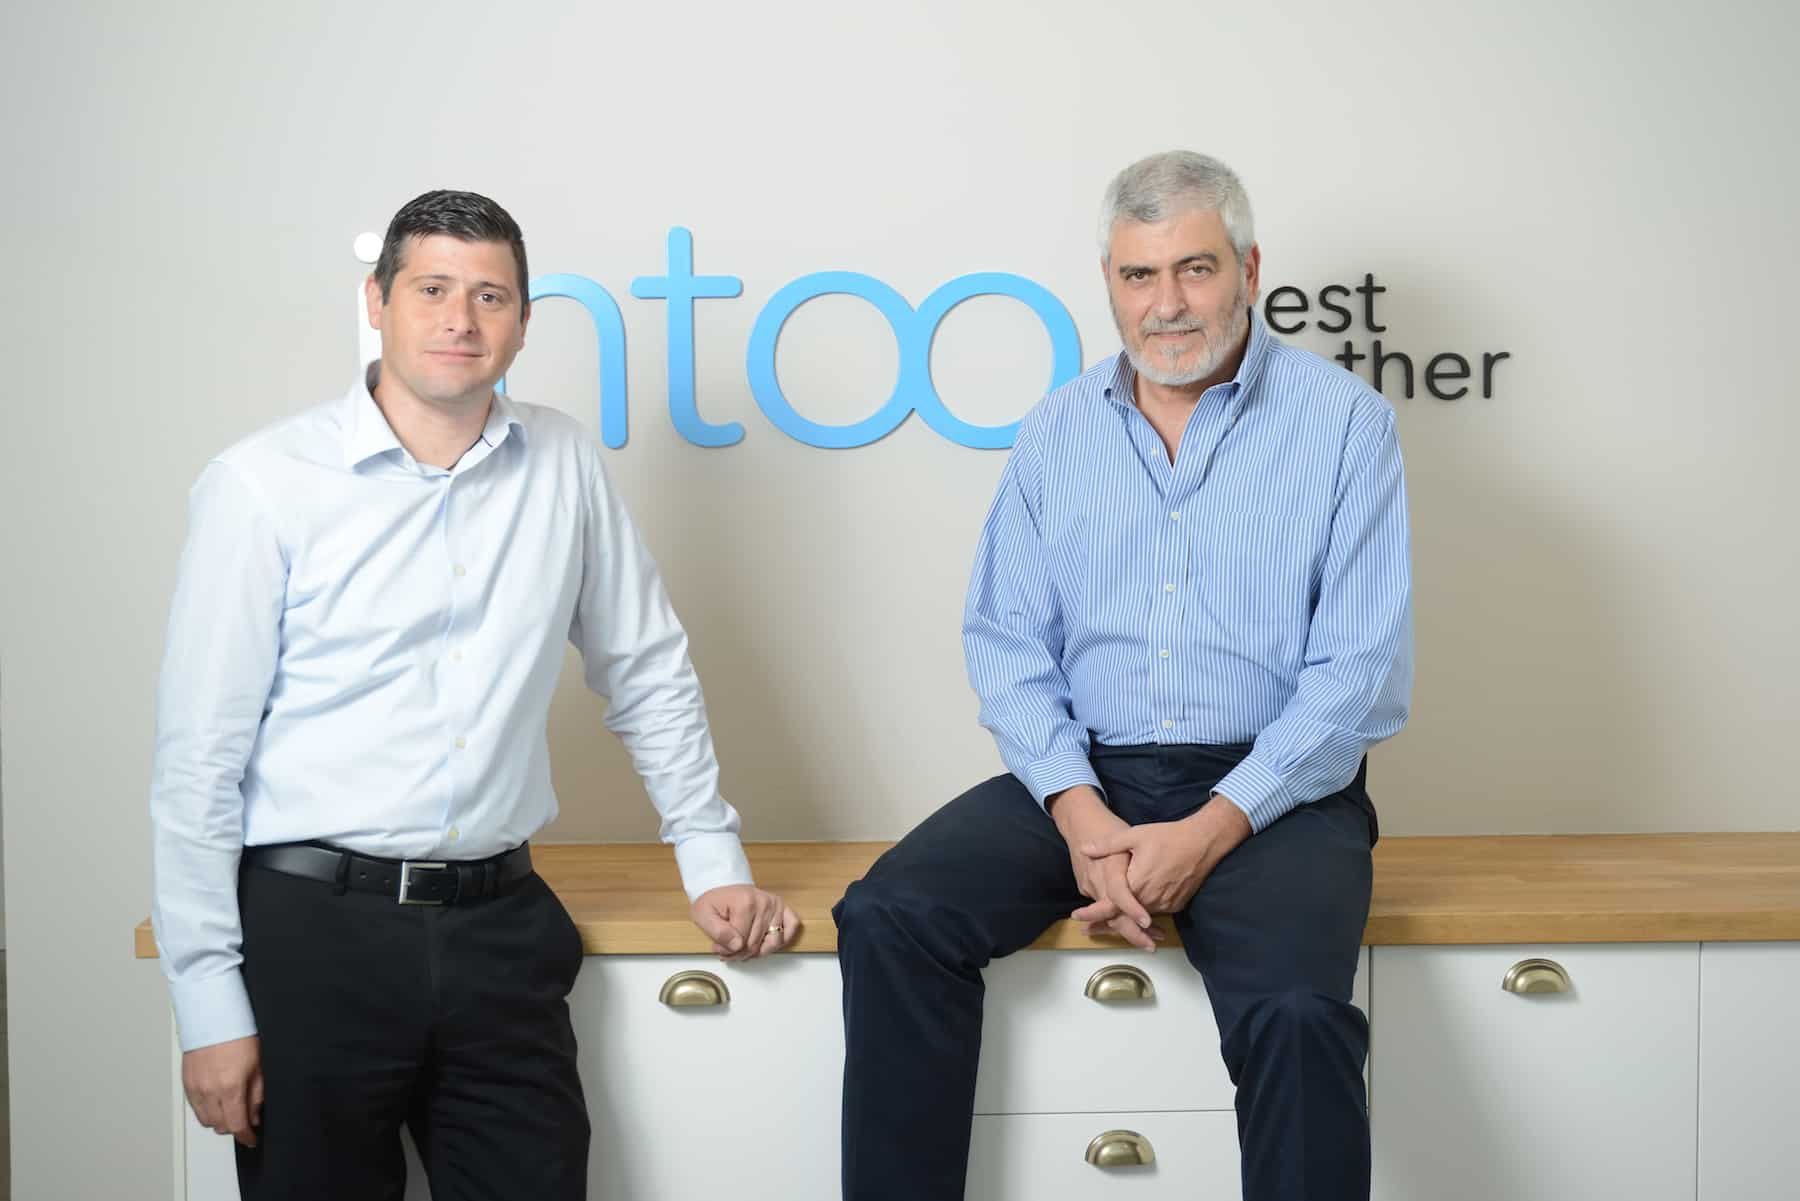 Real Estate Crowdfunding: iintoo Acquires RealtyShares Assets